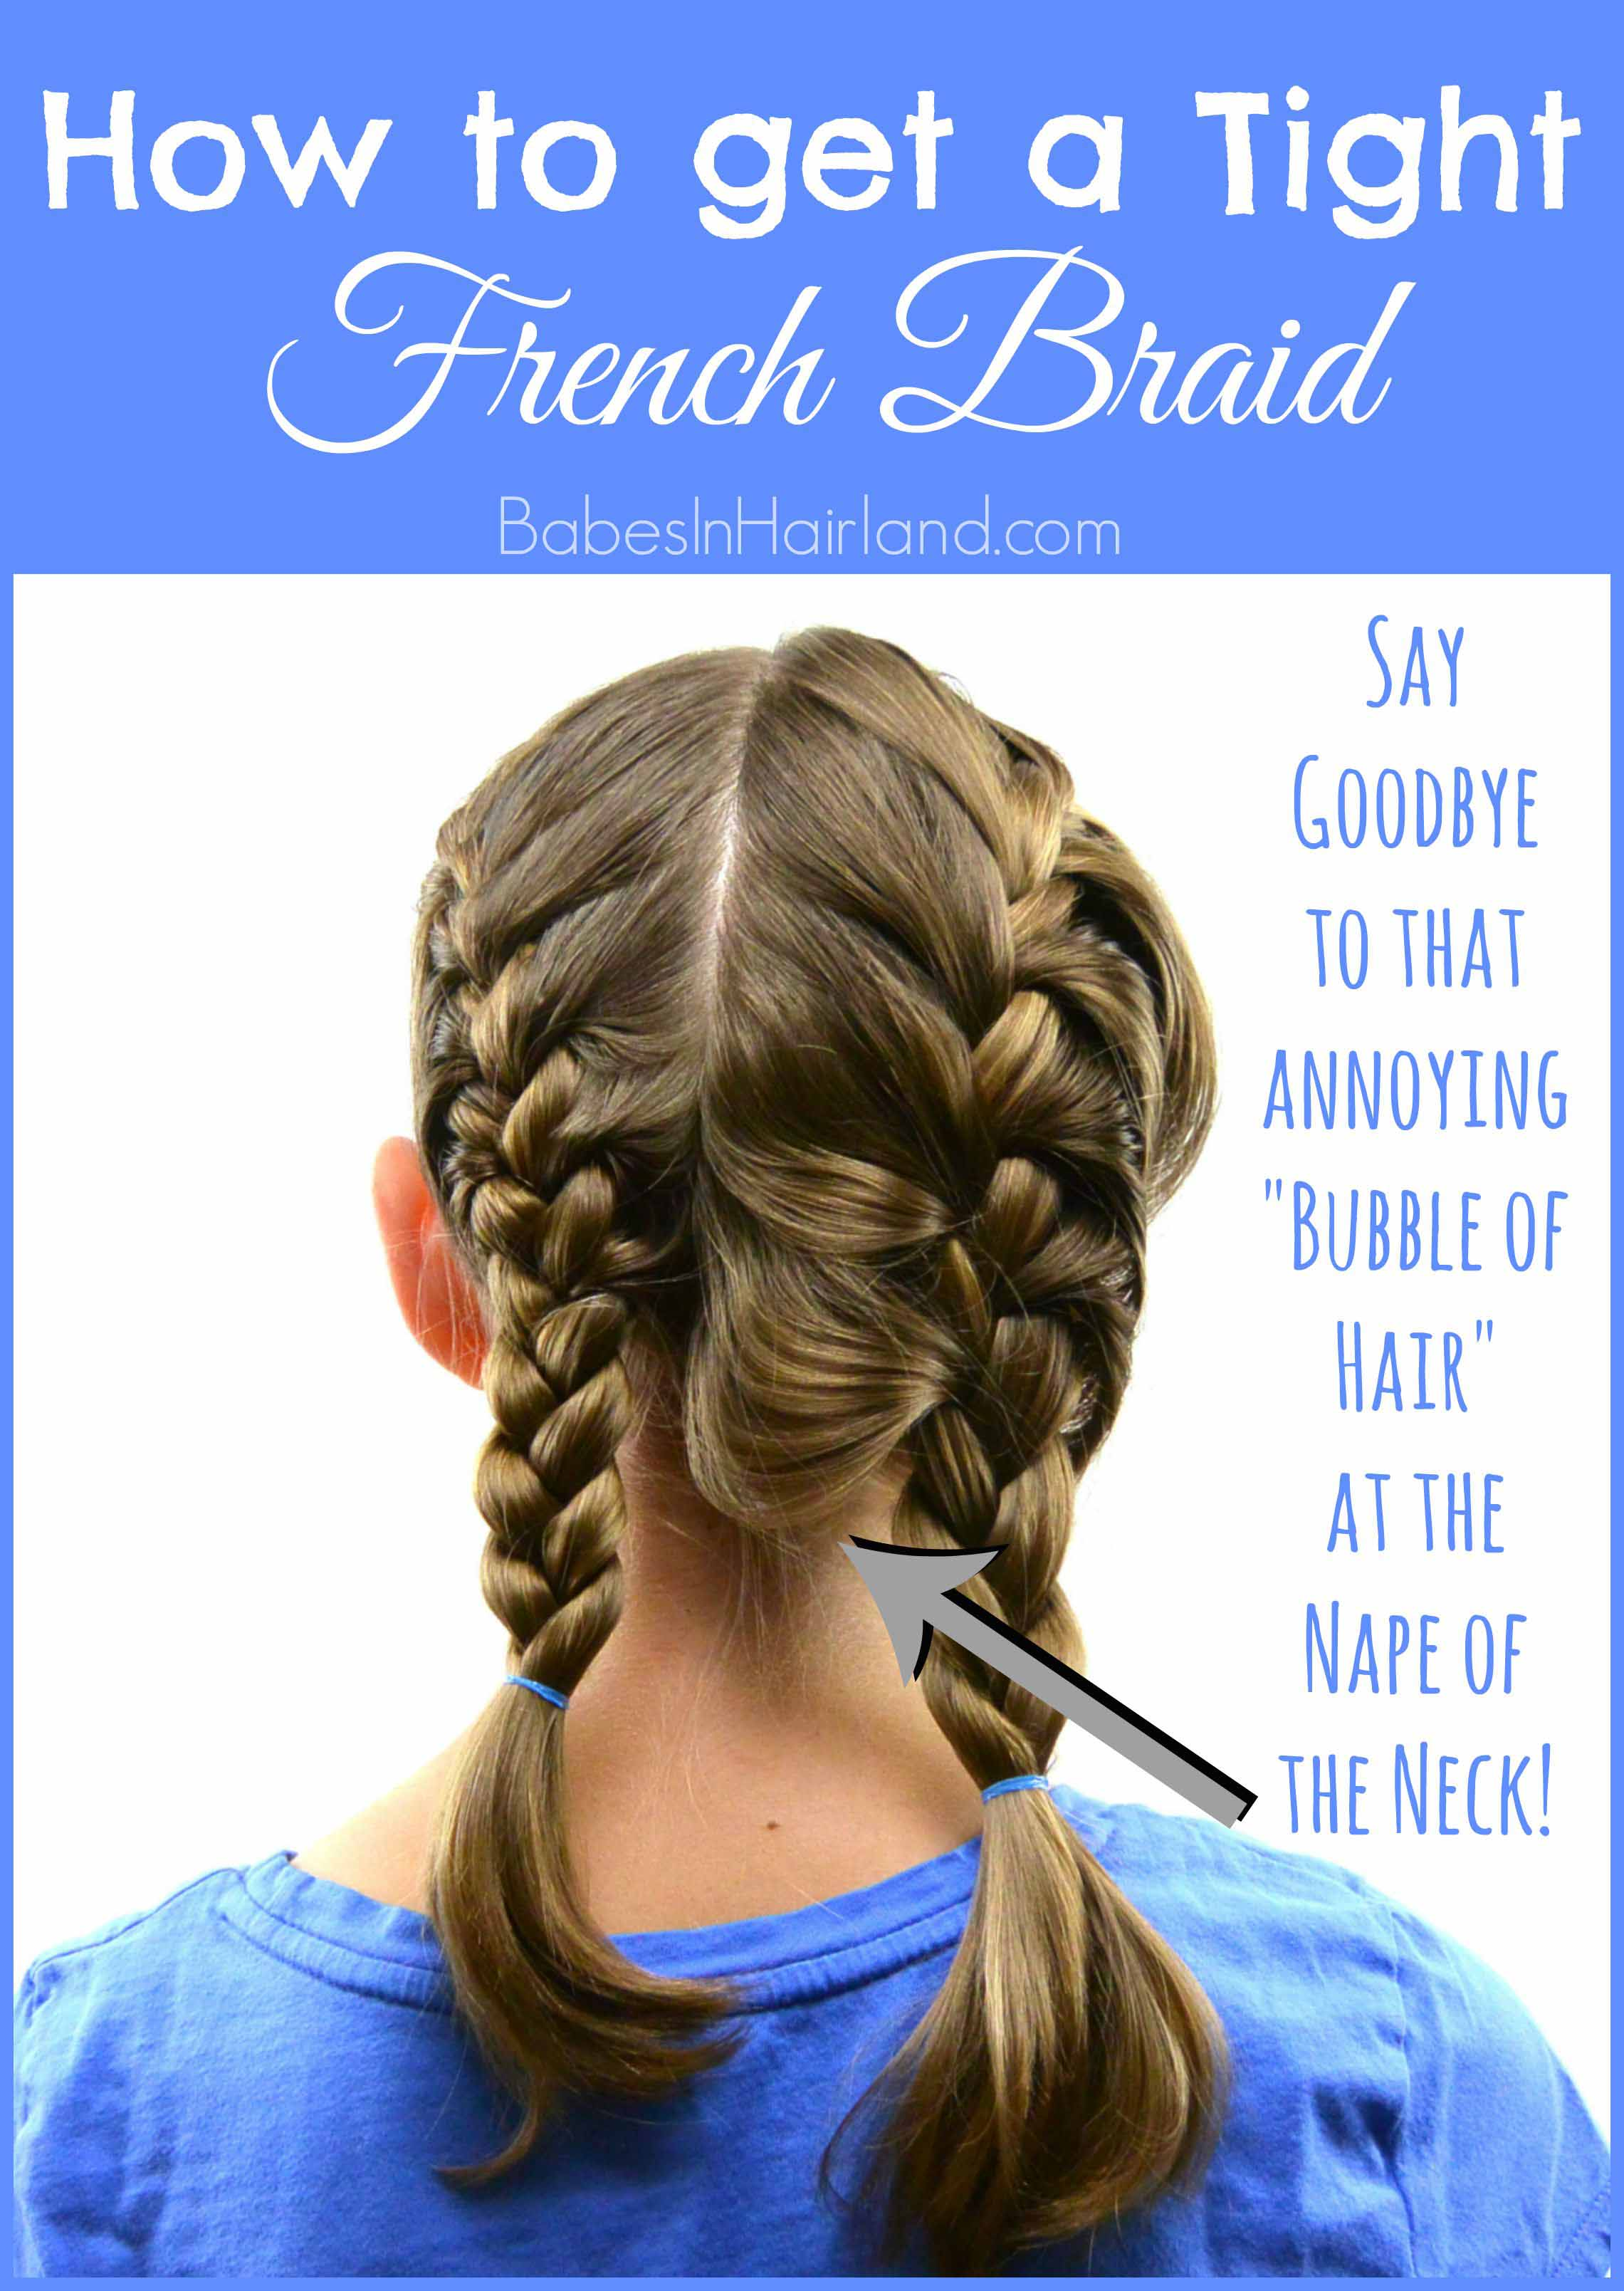 How to get a tight french braid babes in hairland how to get a tight french braid from babesinhairland frenchbraid hairtips solutioingenieria Gallery